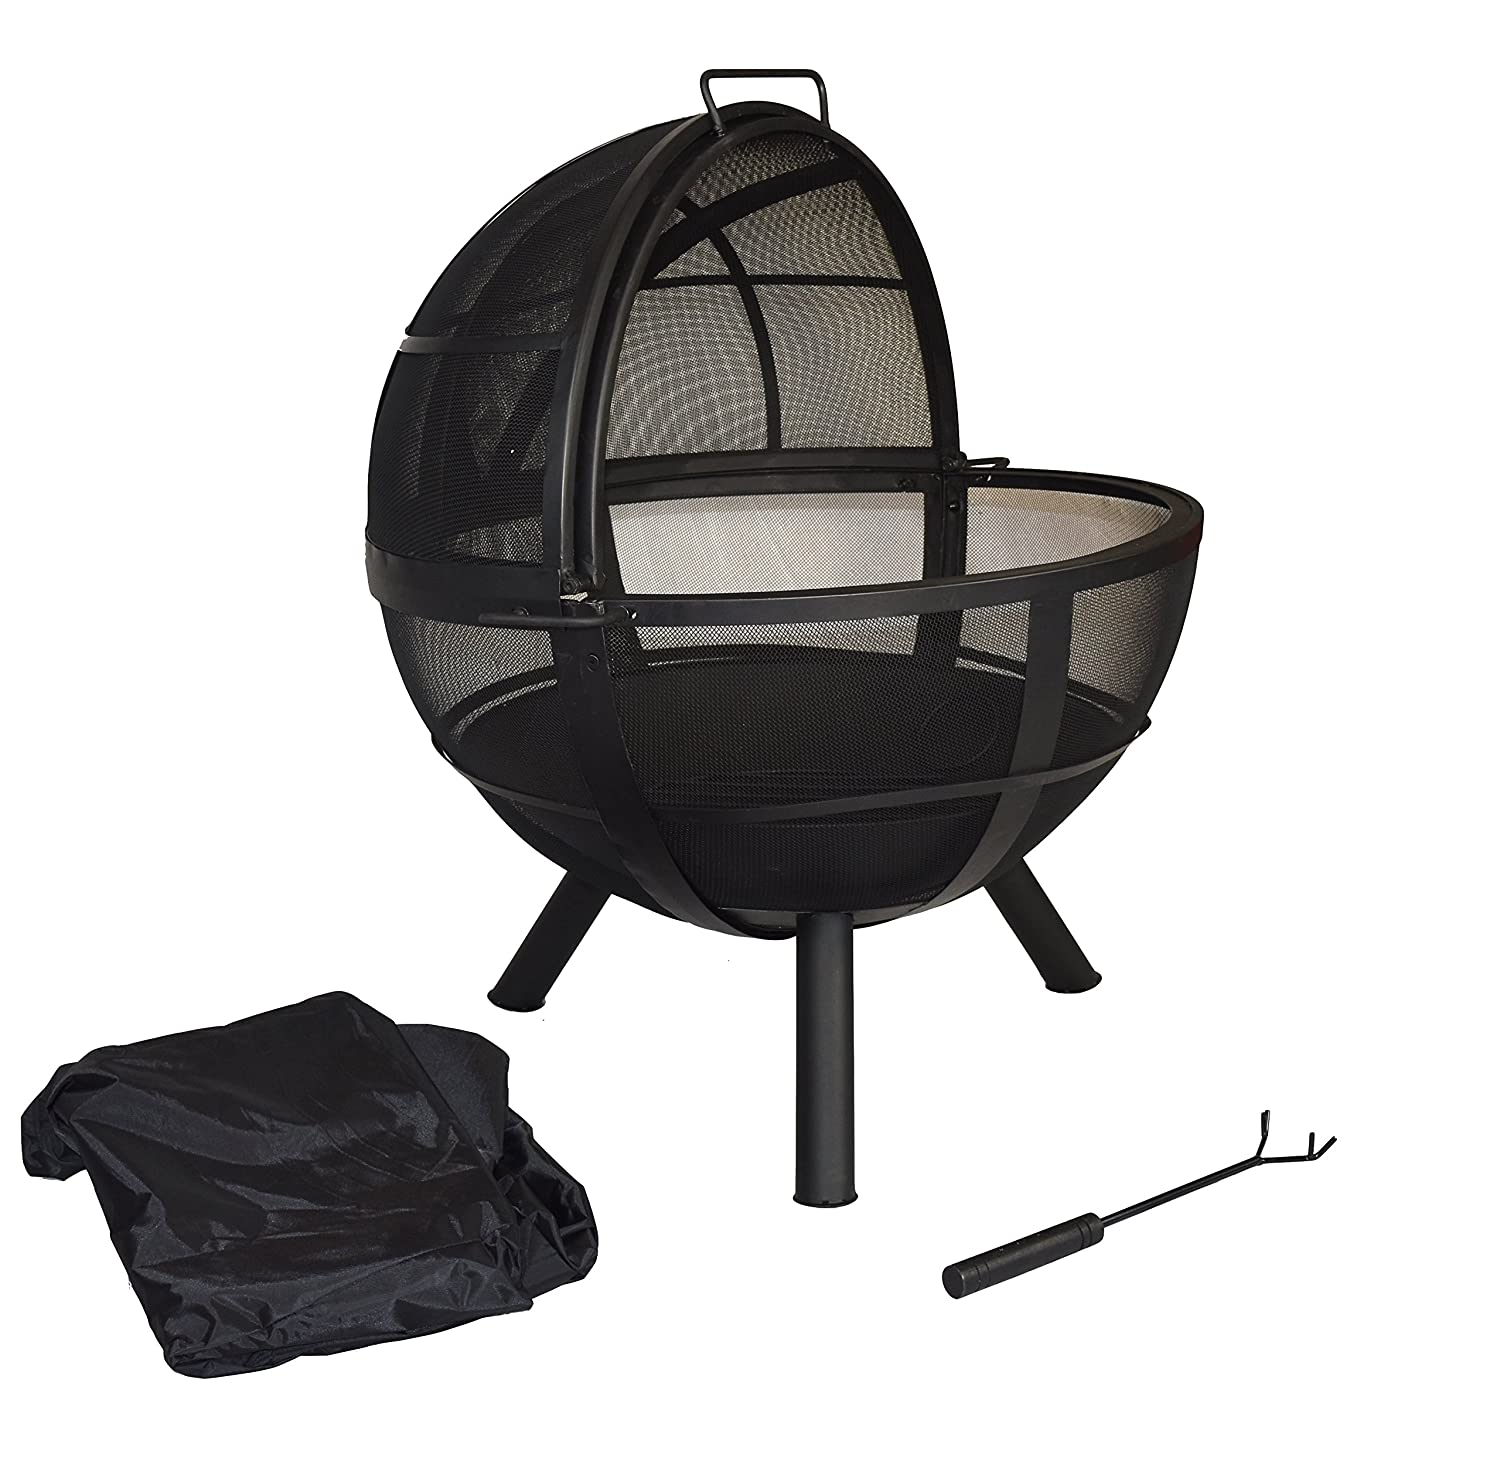 91nzMUMtioL. SL1500  Top Result 50 Awesome Rust Proof Fire Pit Pic 2018 Iqt4